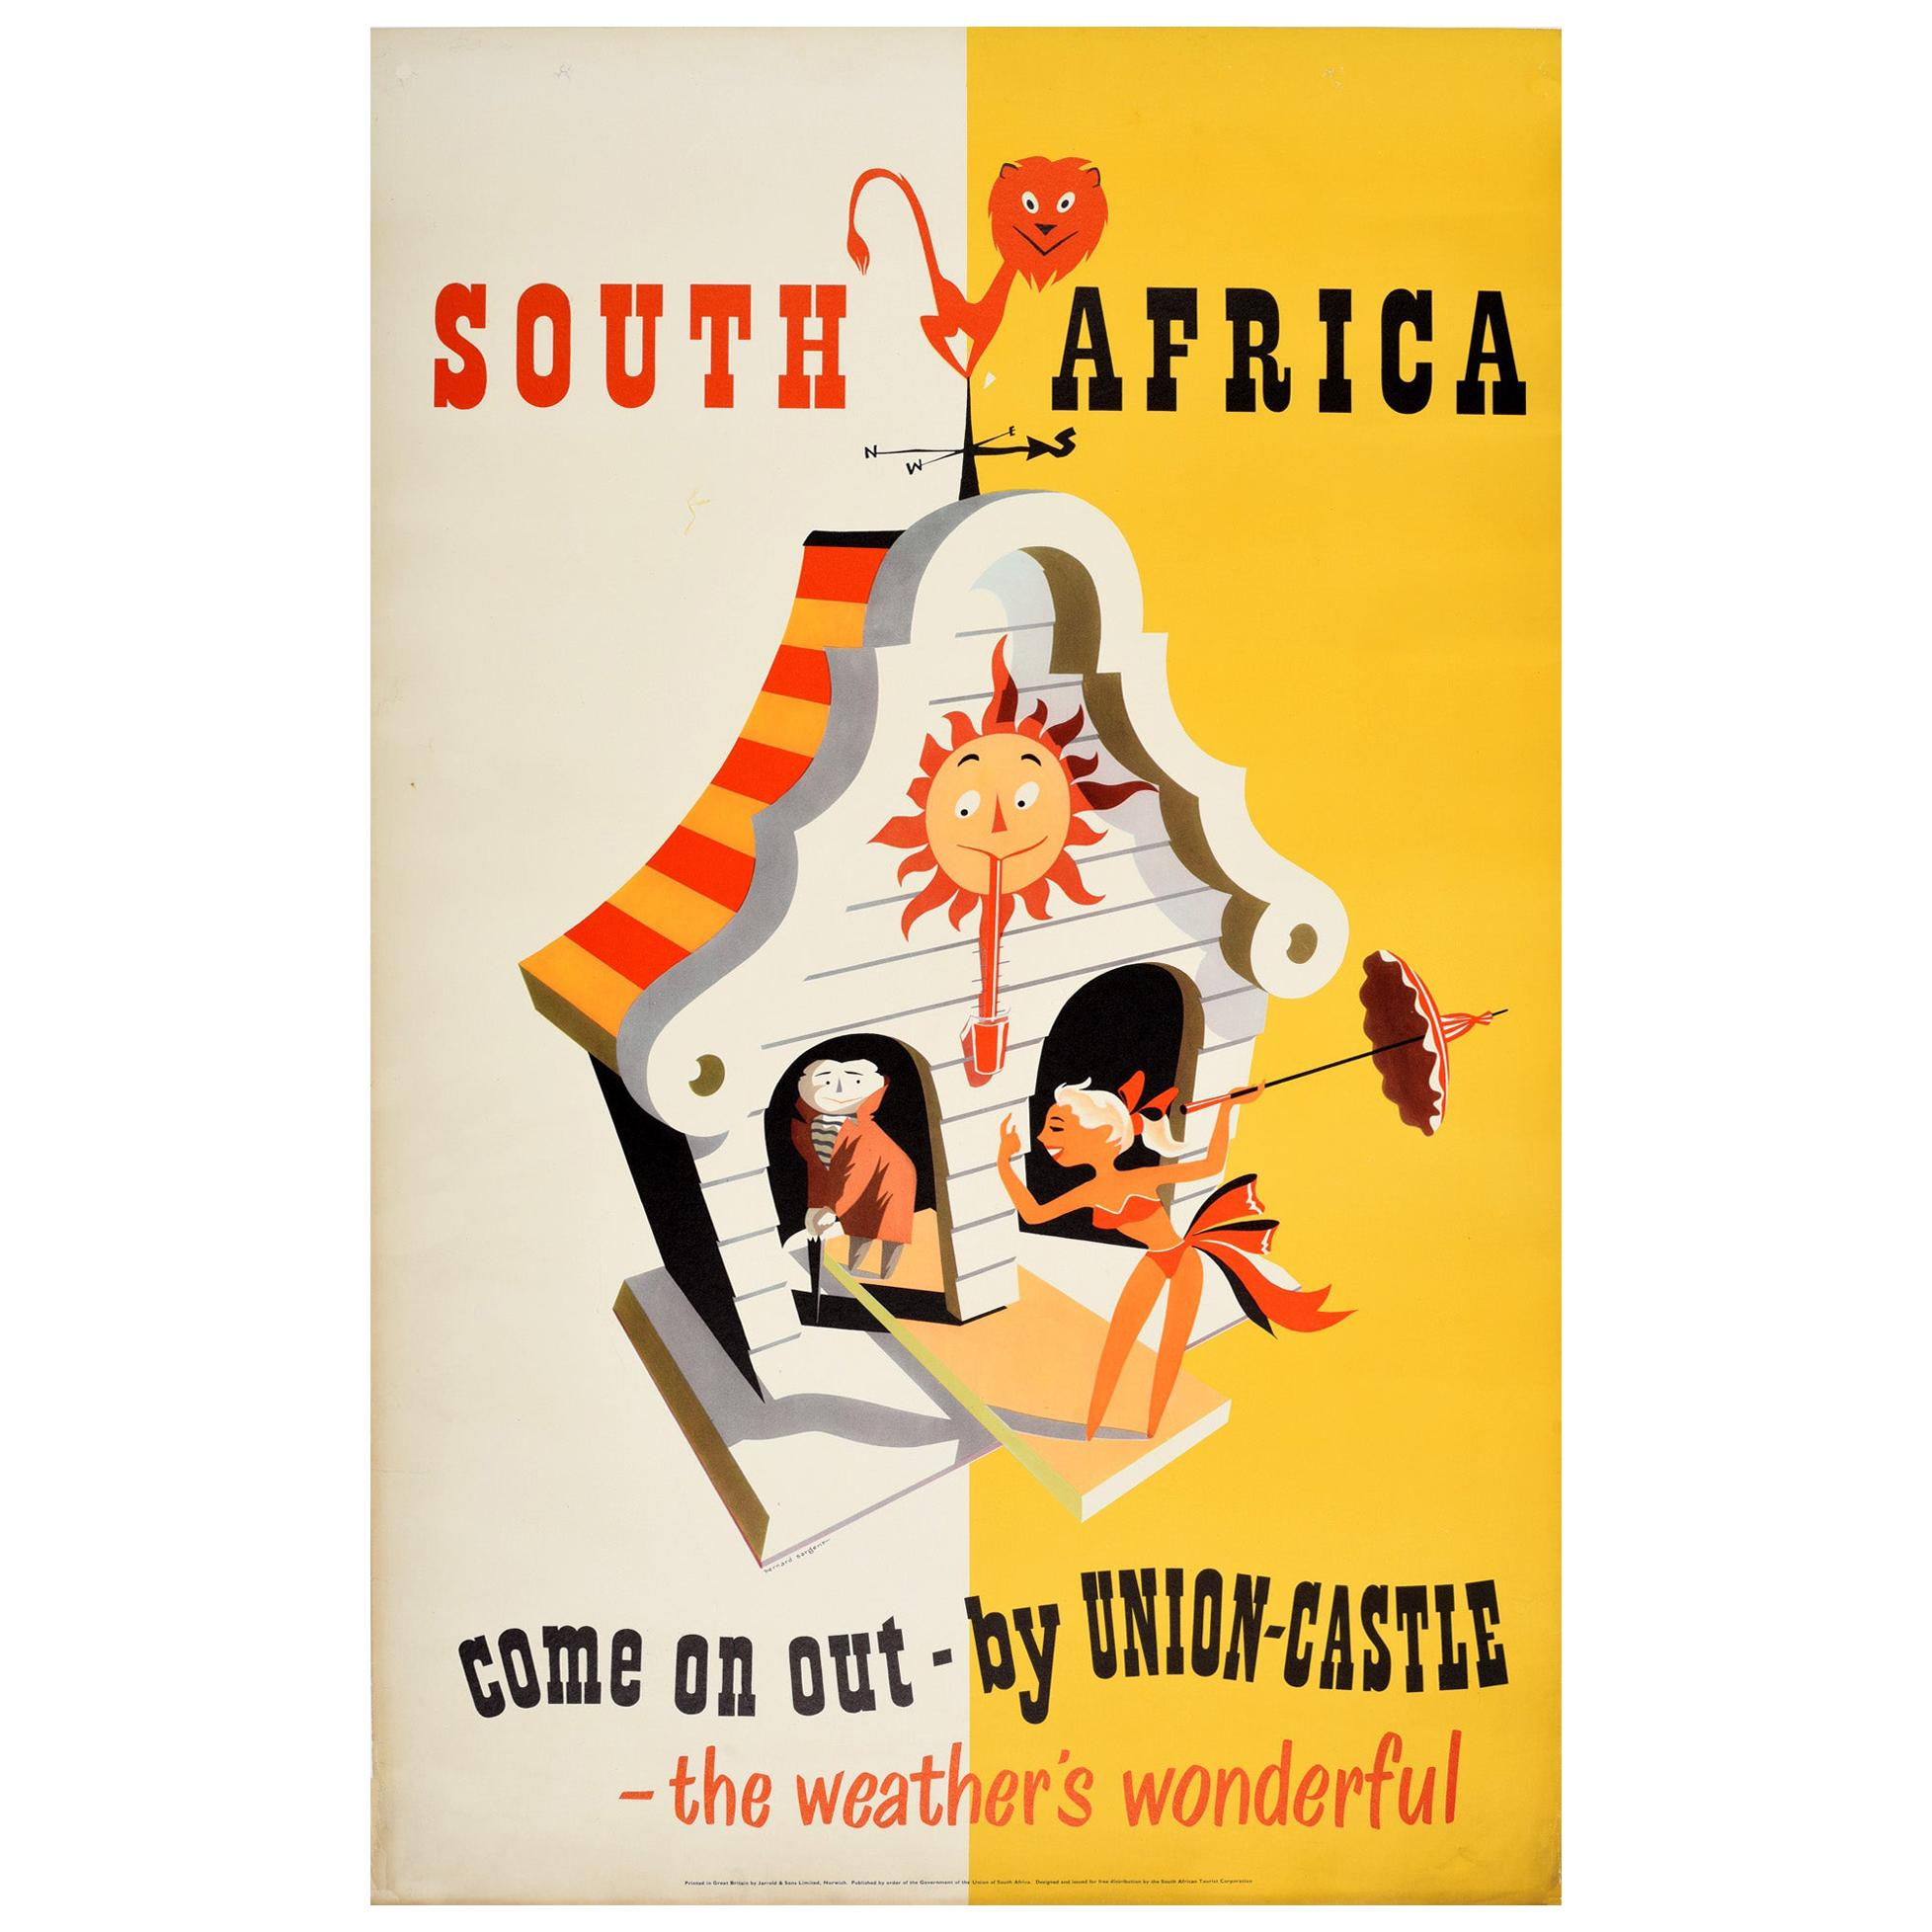 Original Vintage Poster South Africa Come On Out Union Castle Line Cruise Travel